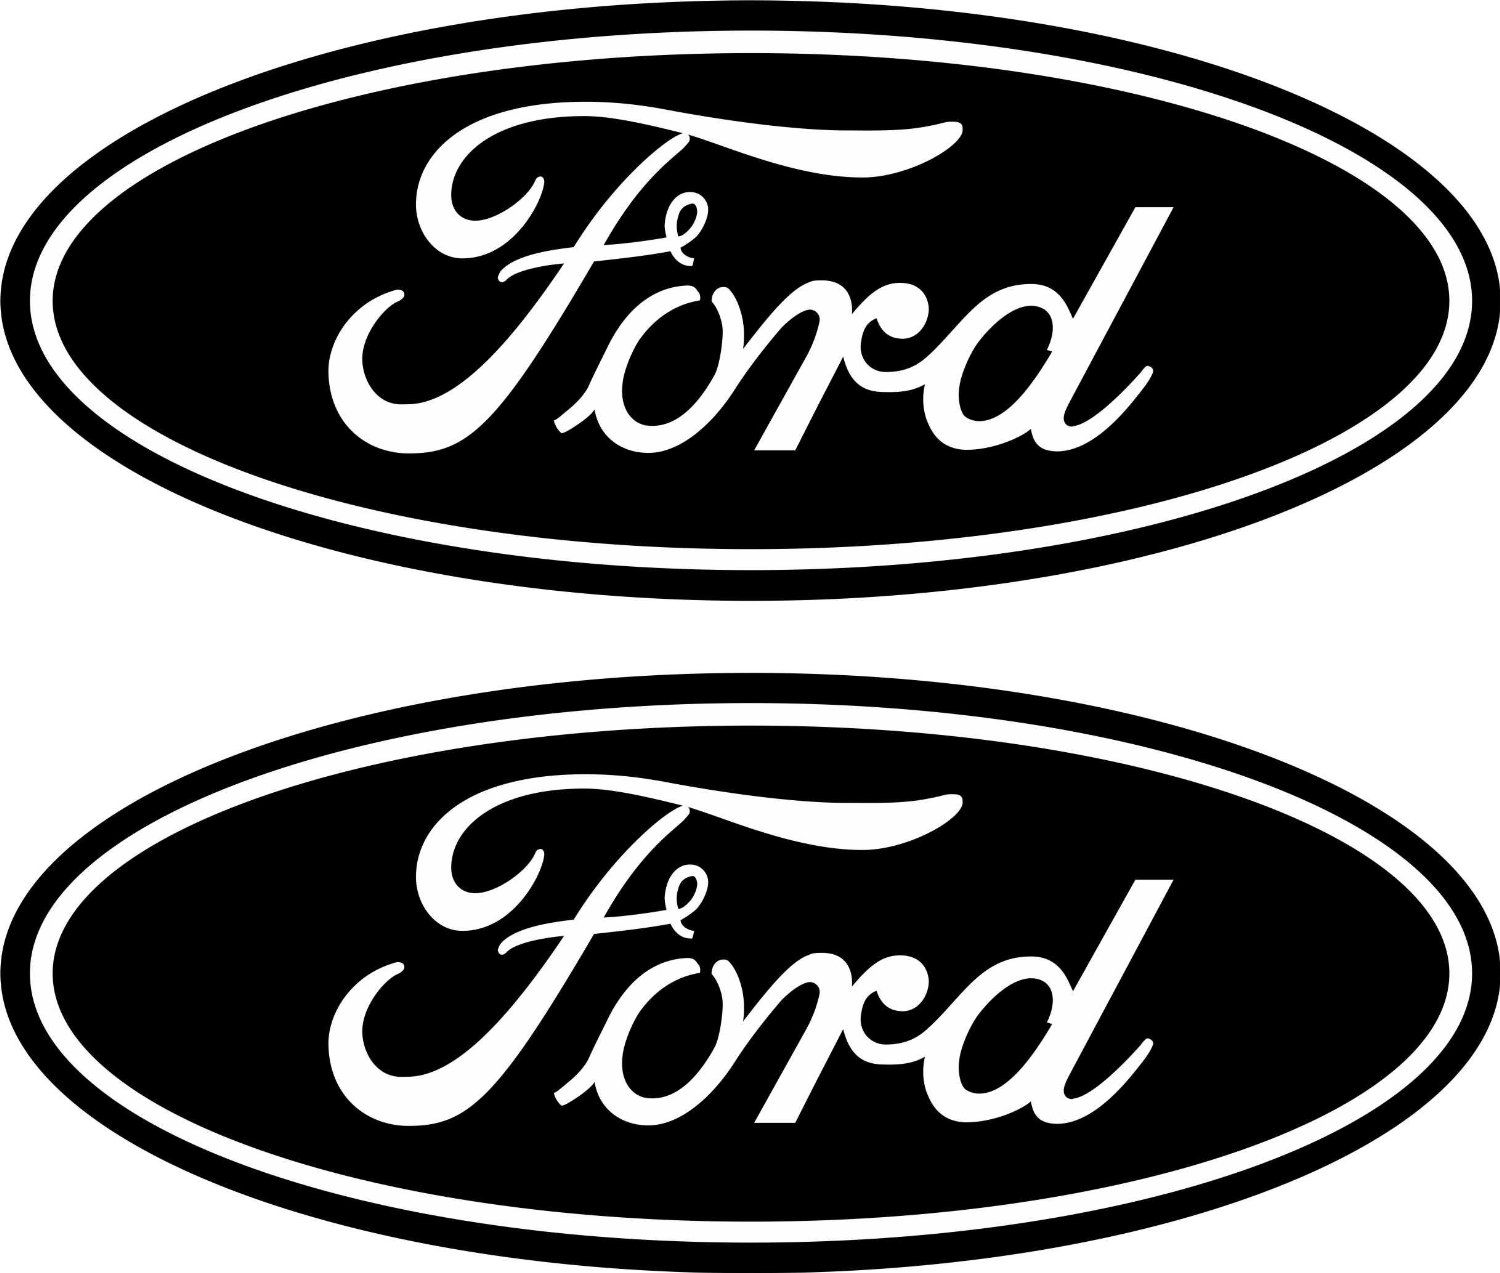 Black ford logo hd images wallpaper ford pinterest hd images black ford logo hd images wallpaper voltagebd Image collections